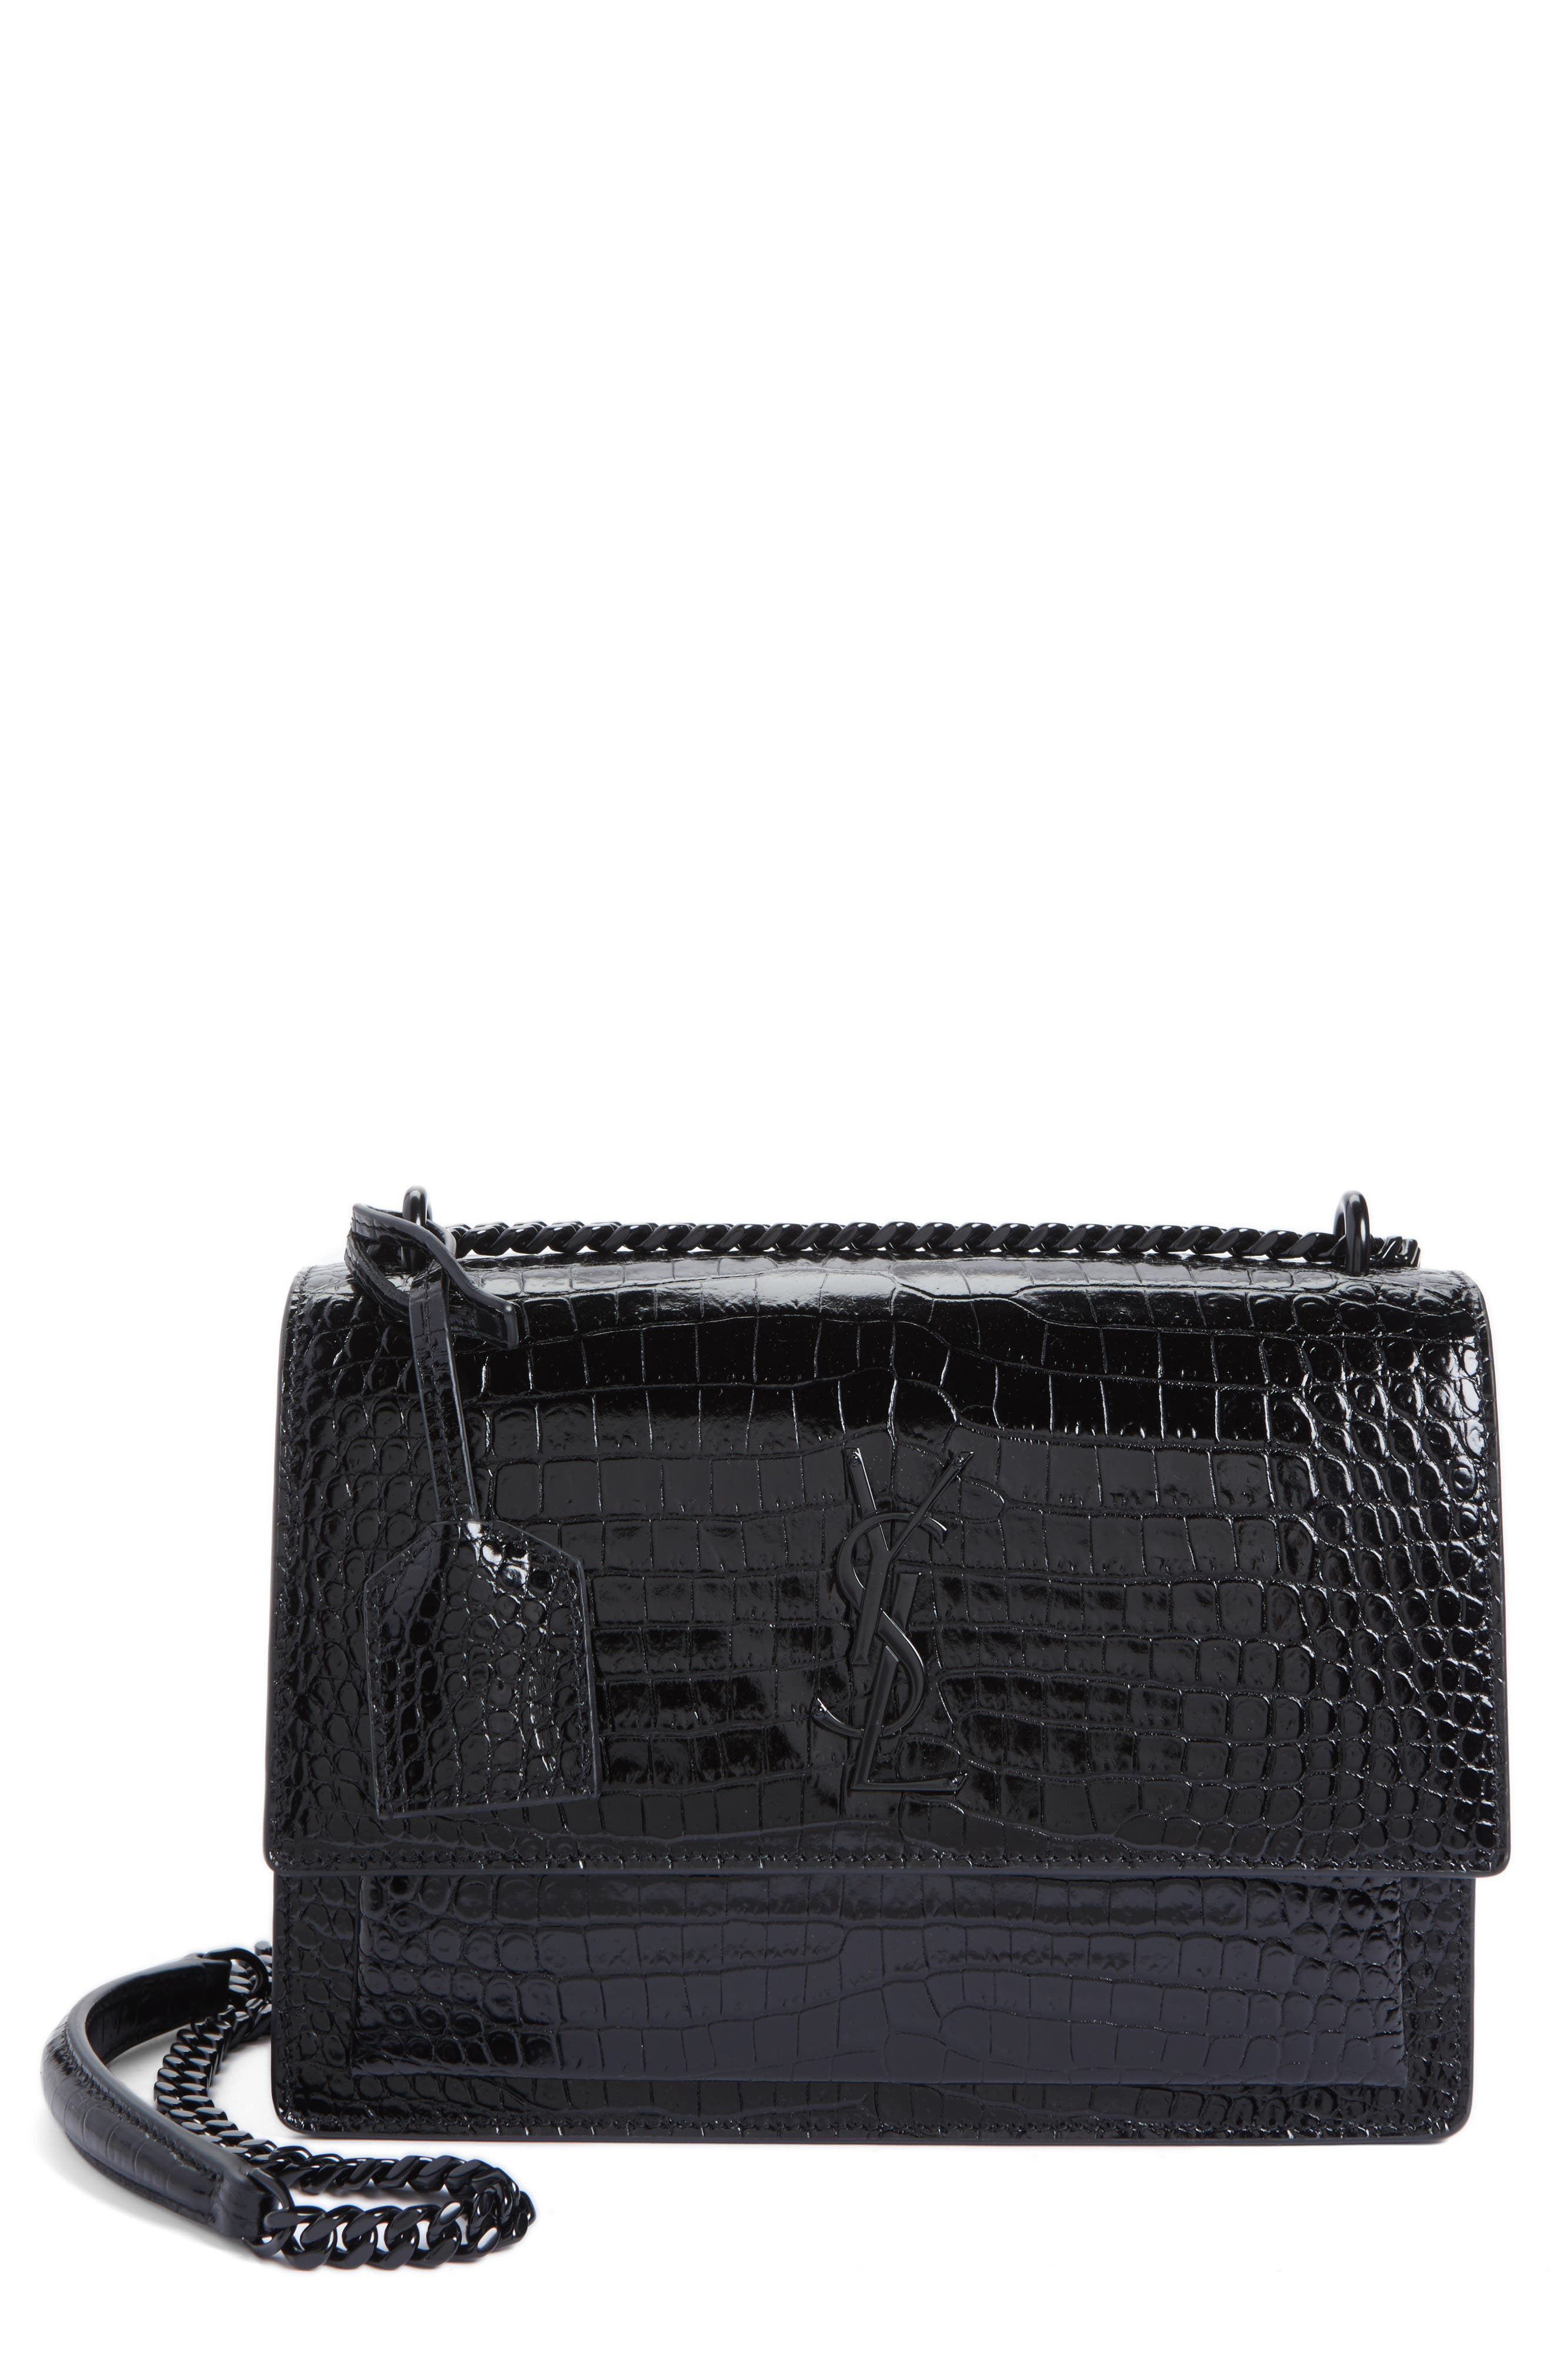 SAINT LAURENT Medium Sunset Croc Embossed Leather Shoulder Bag